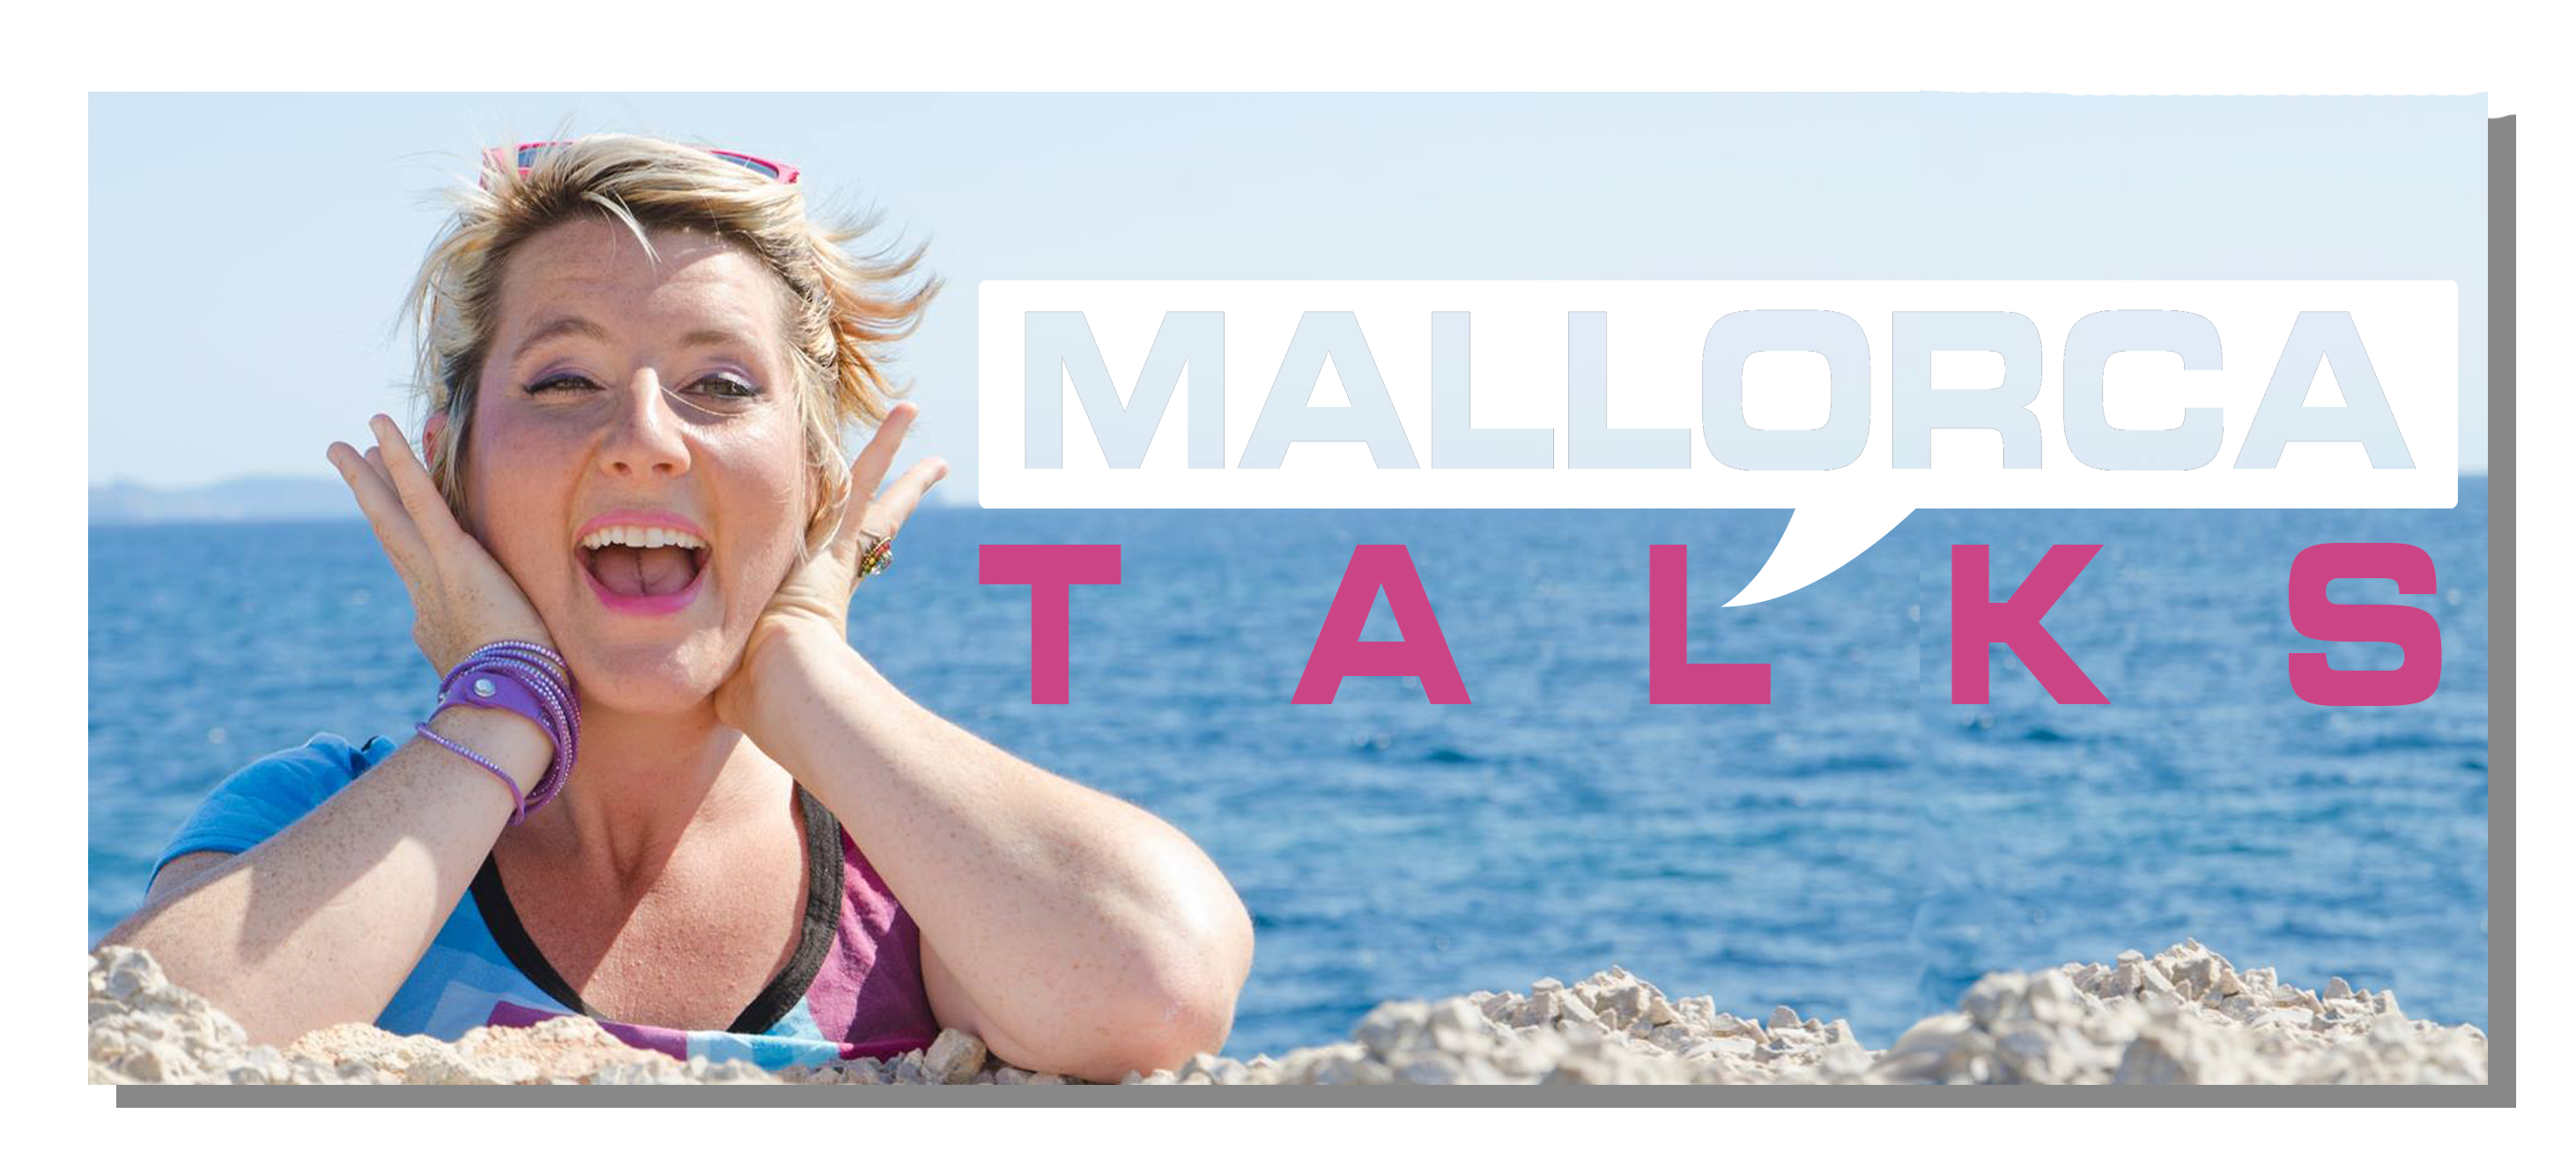 mallorca-talks.com